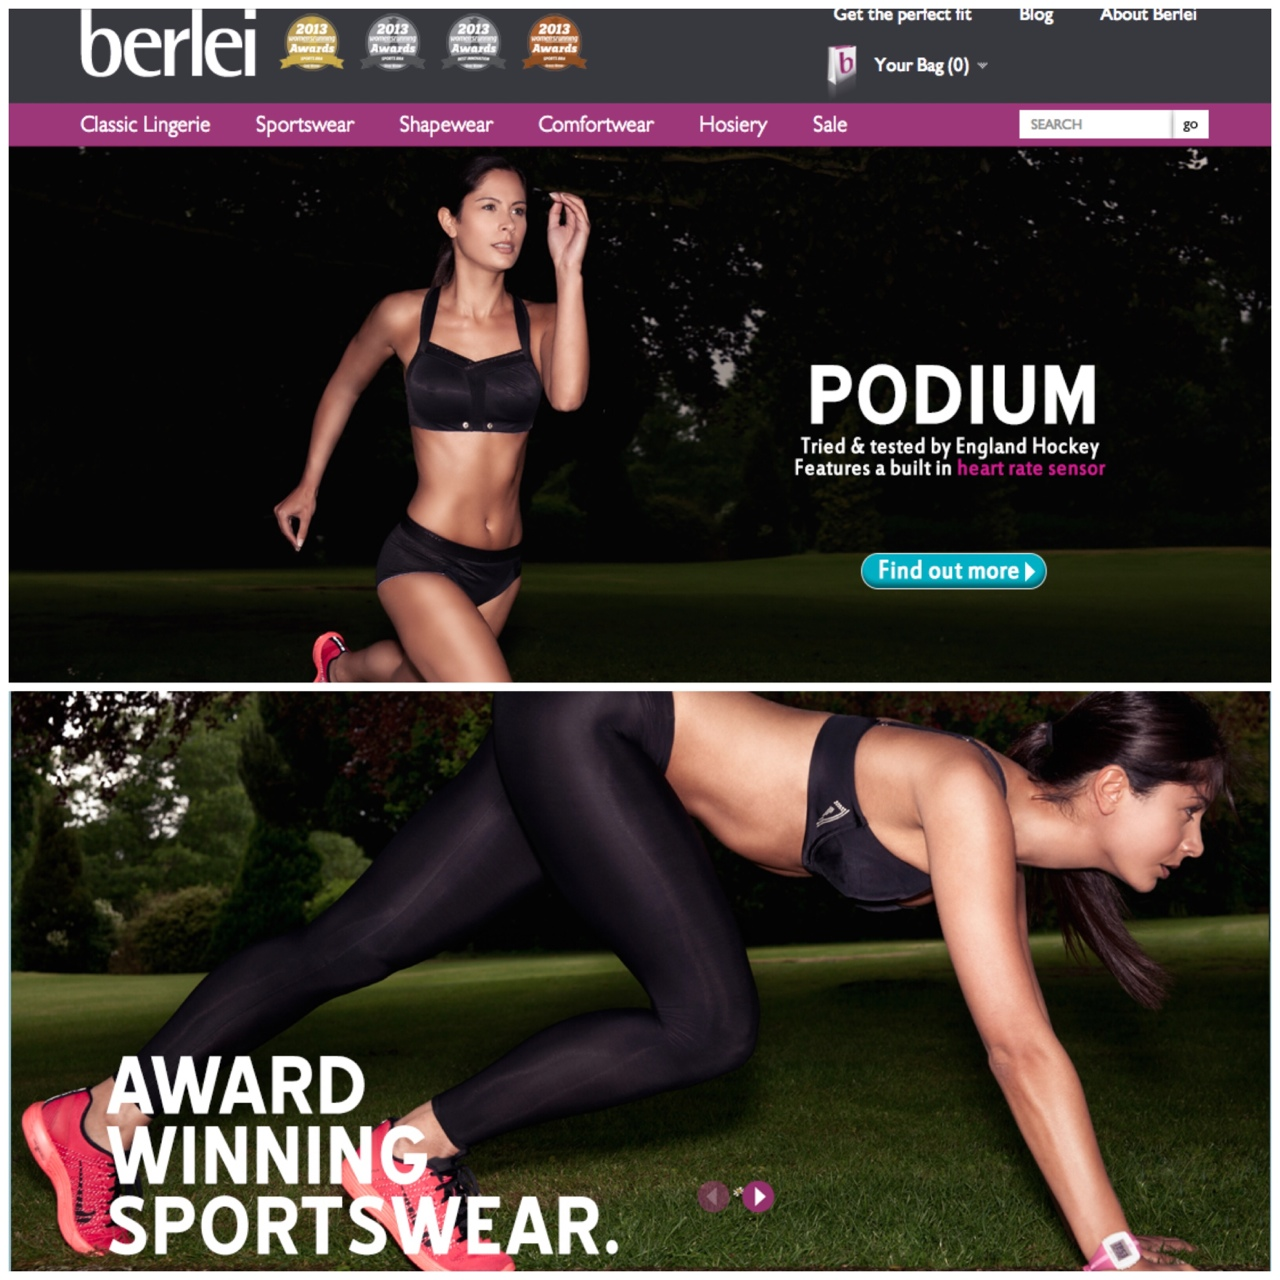 New Berlei Sportswear campaign I shot just went live at  http://www.berlei.com